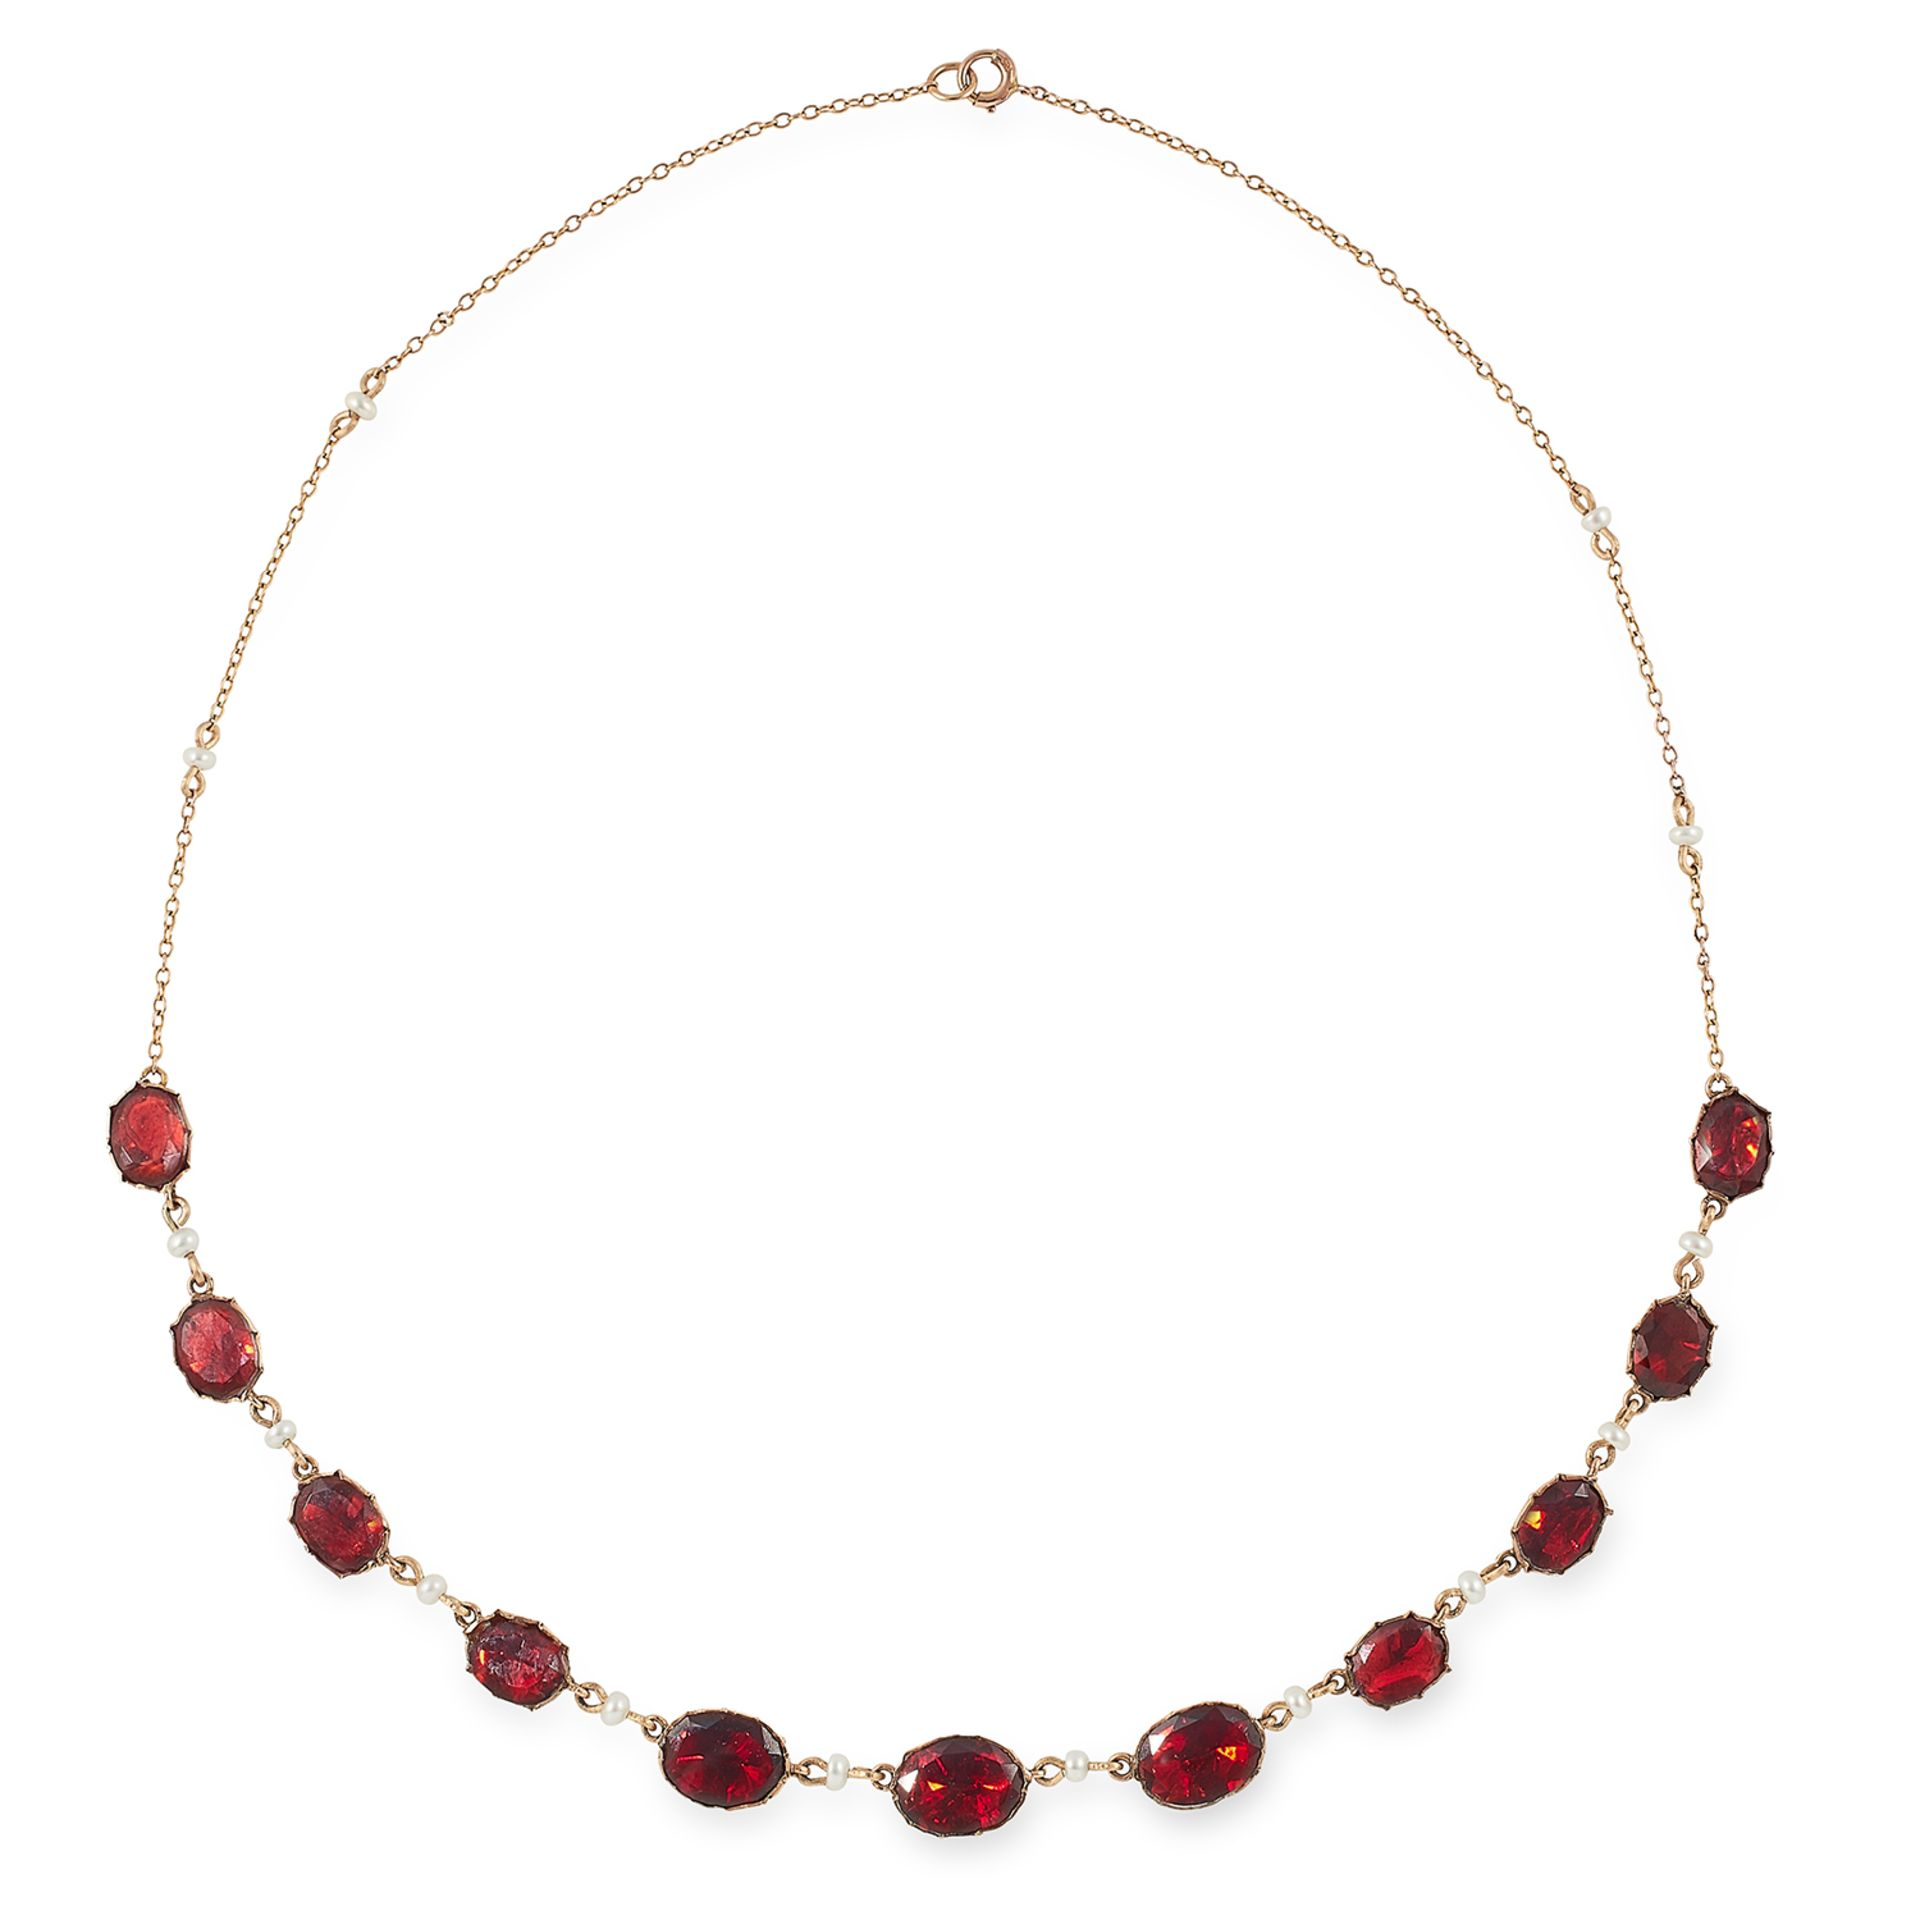 ANTIQUE GARNET AND SEED PEARL NECKLACE set with oval cut garnets and seed pearls, 43cm, 7g.